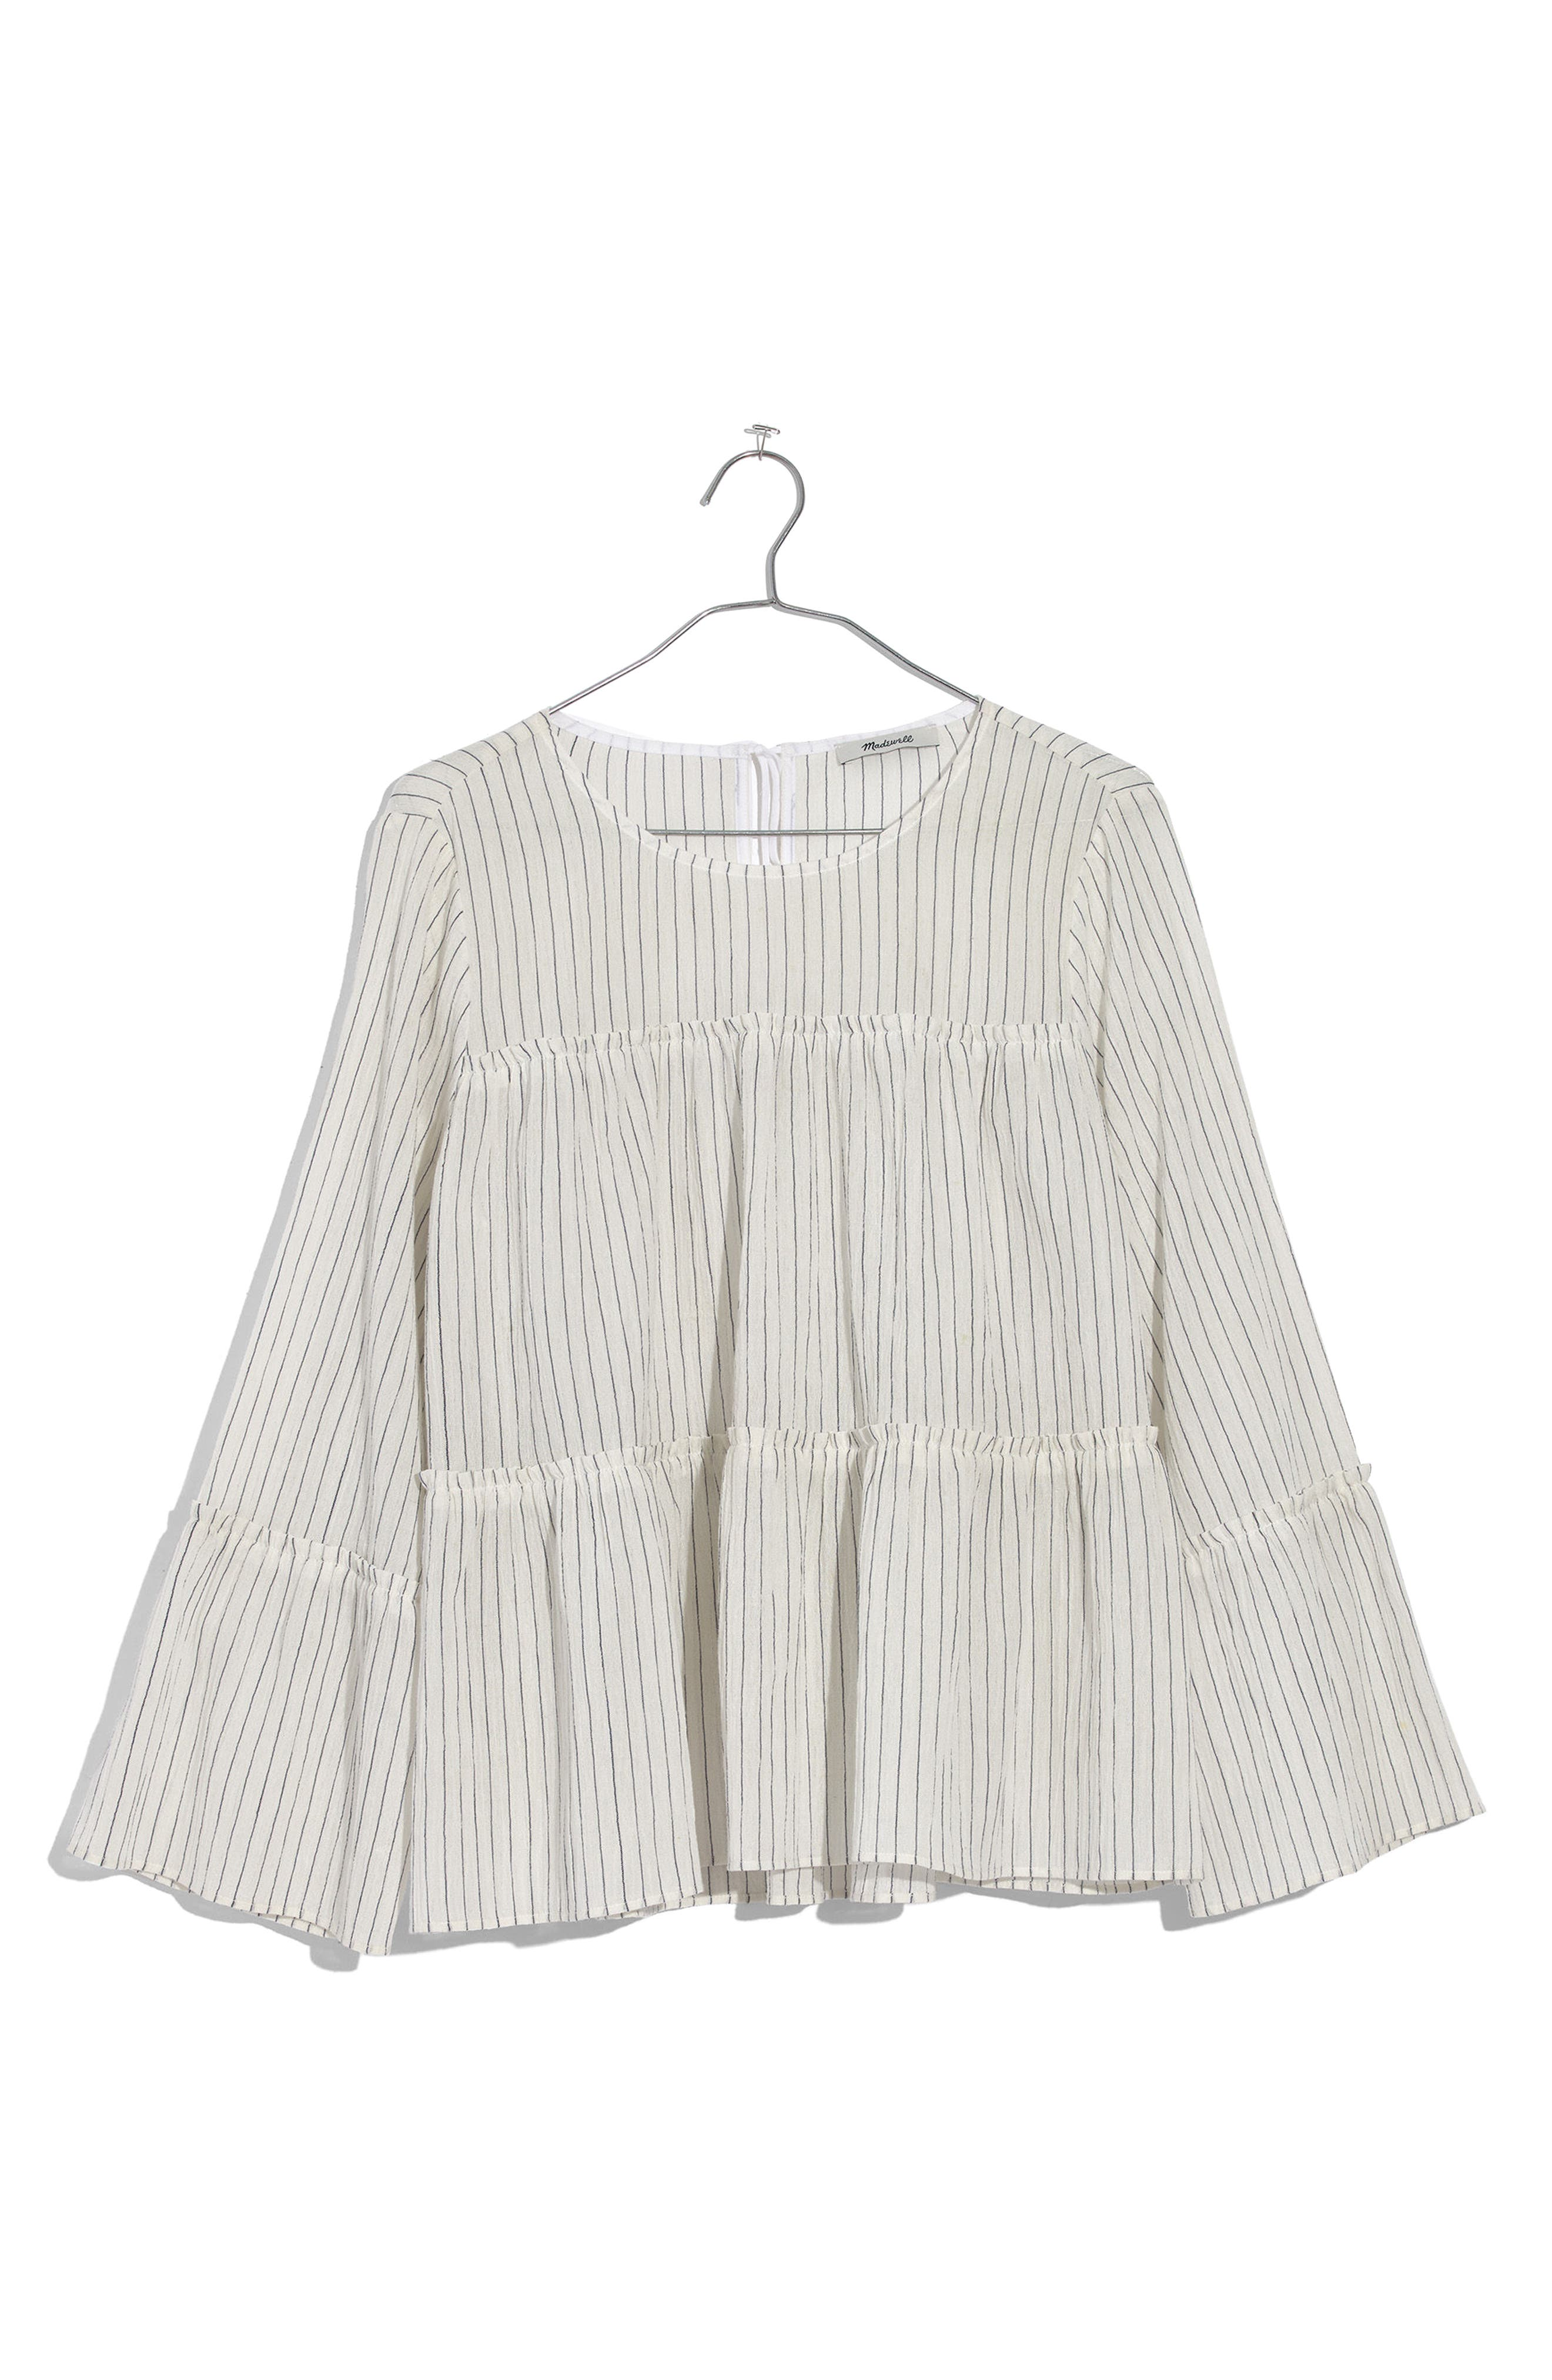 Stripe Tiered Top,                             Alternate thumbnail 3, color,                             100